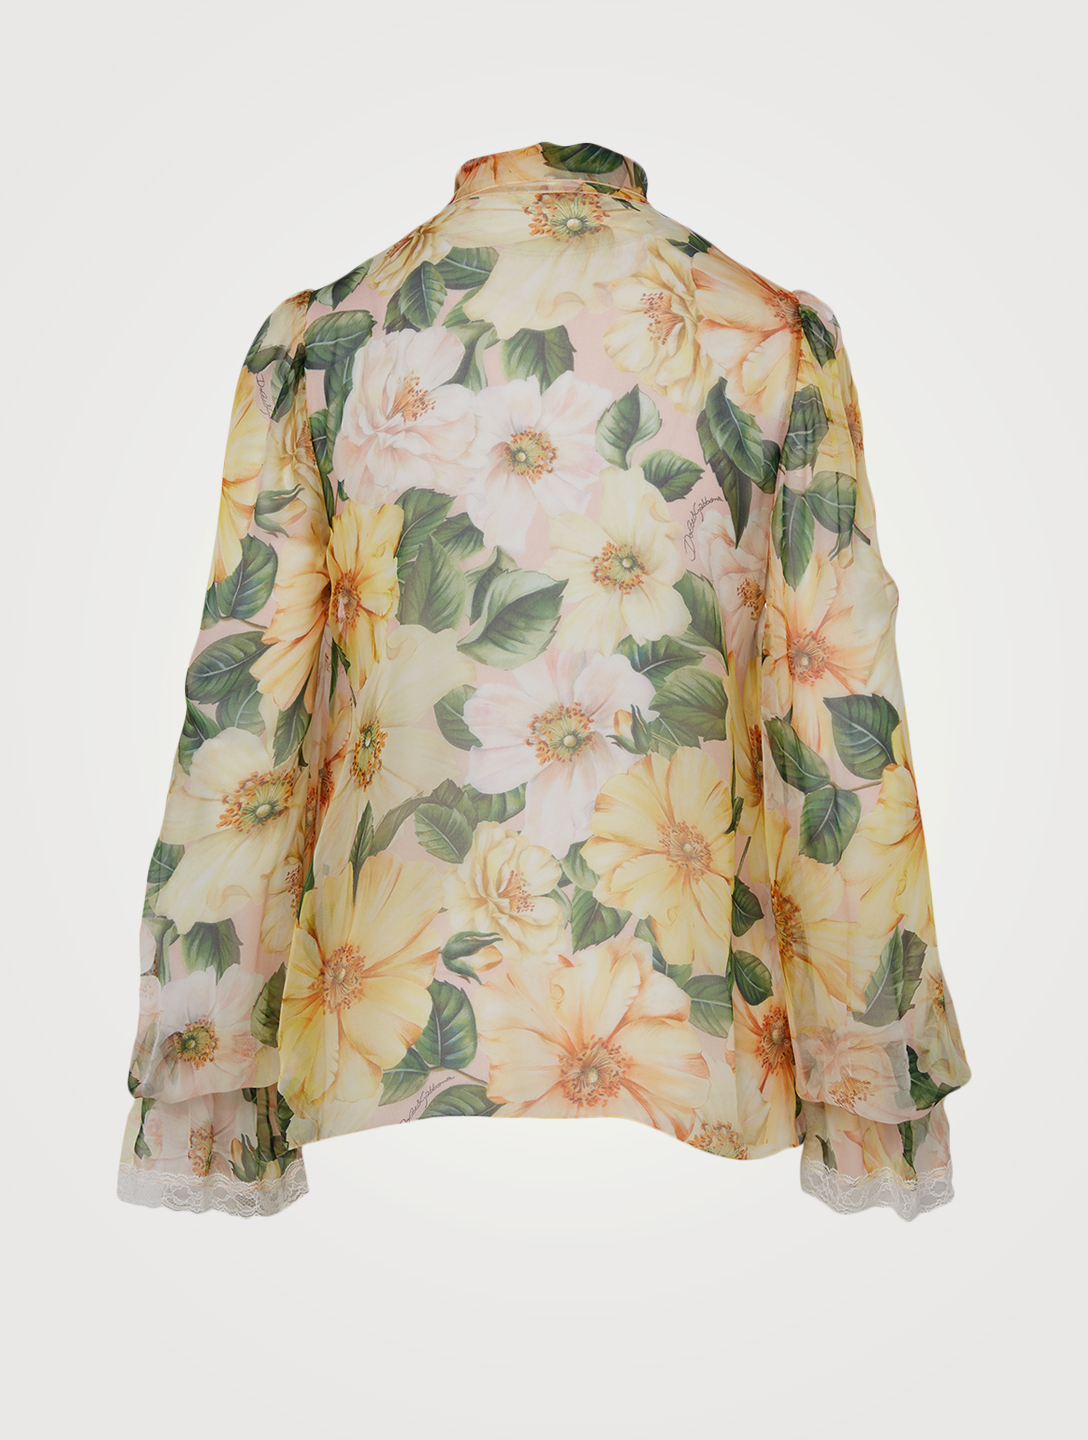 DOLCE & GABBANA Silk-Blend Neck-Tie Blouse In Floral Print Women's Yellow